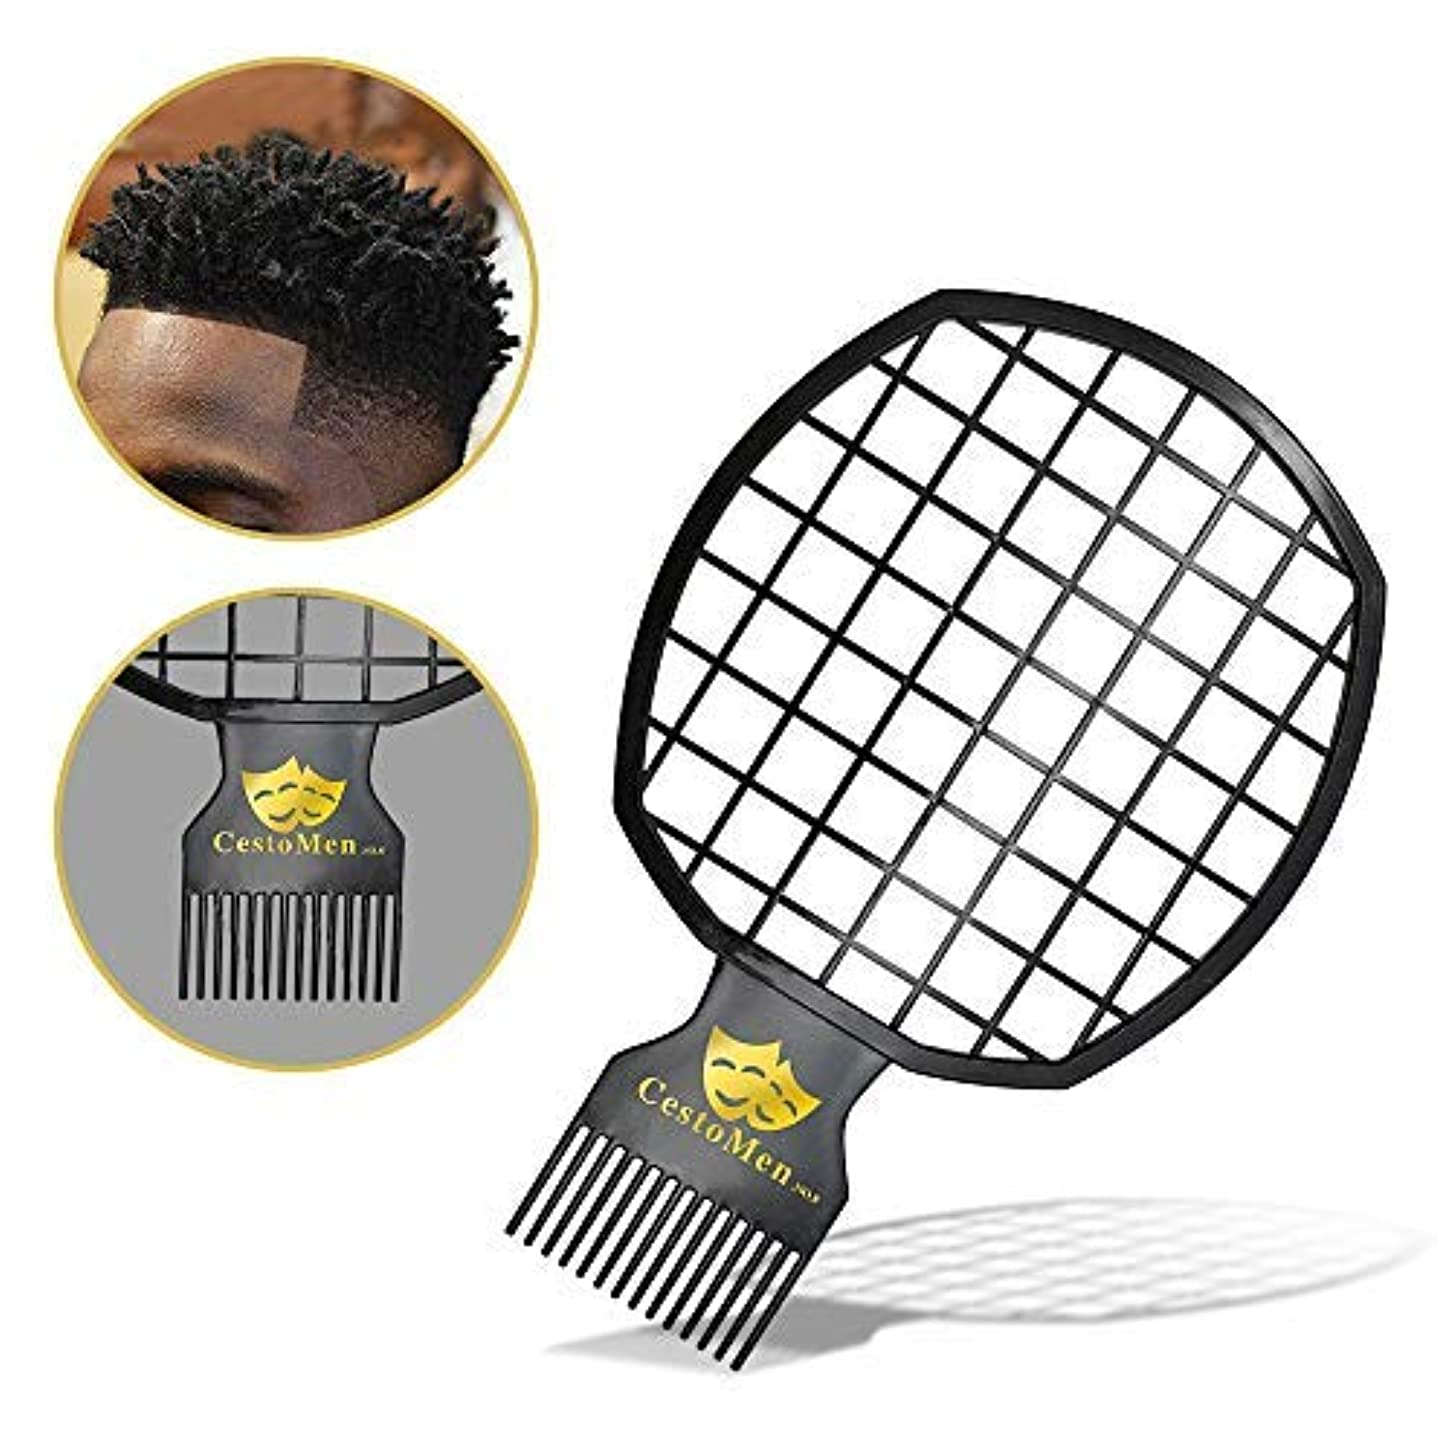 国どんよりしたひばりMagic Twist Hair Coils Comb Tool, Afro Pick Hair Curl Sponge Brush (Black) [並行輸入品]